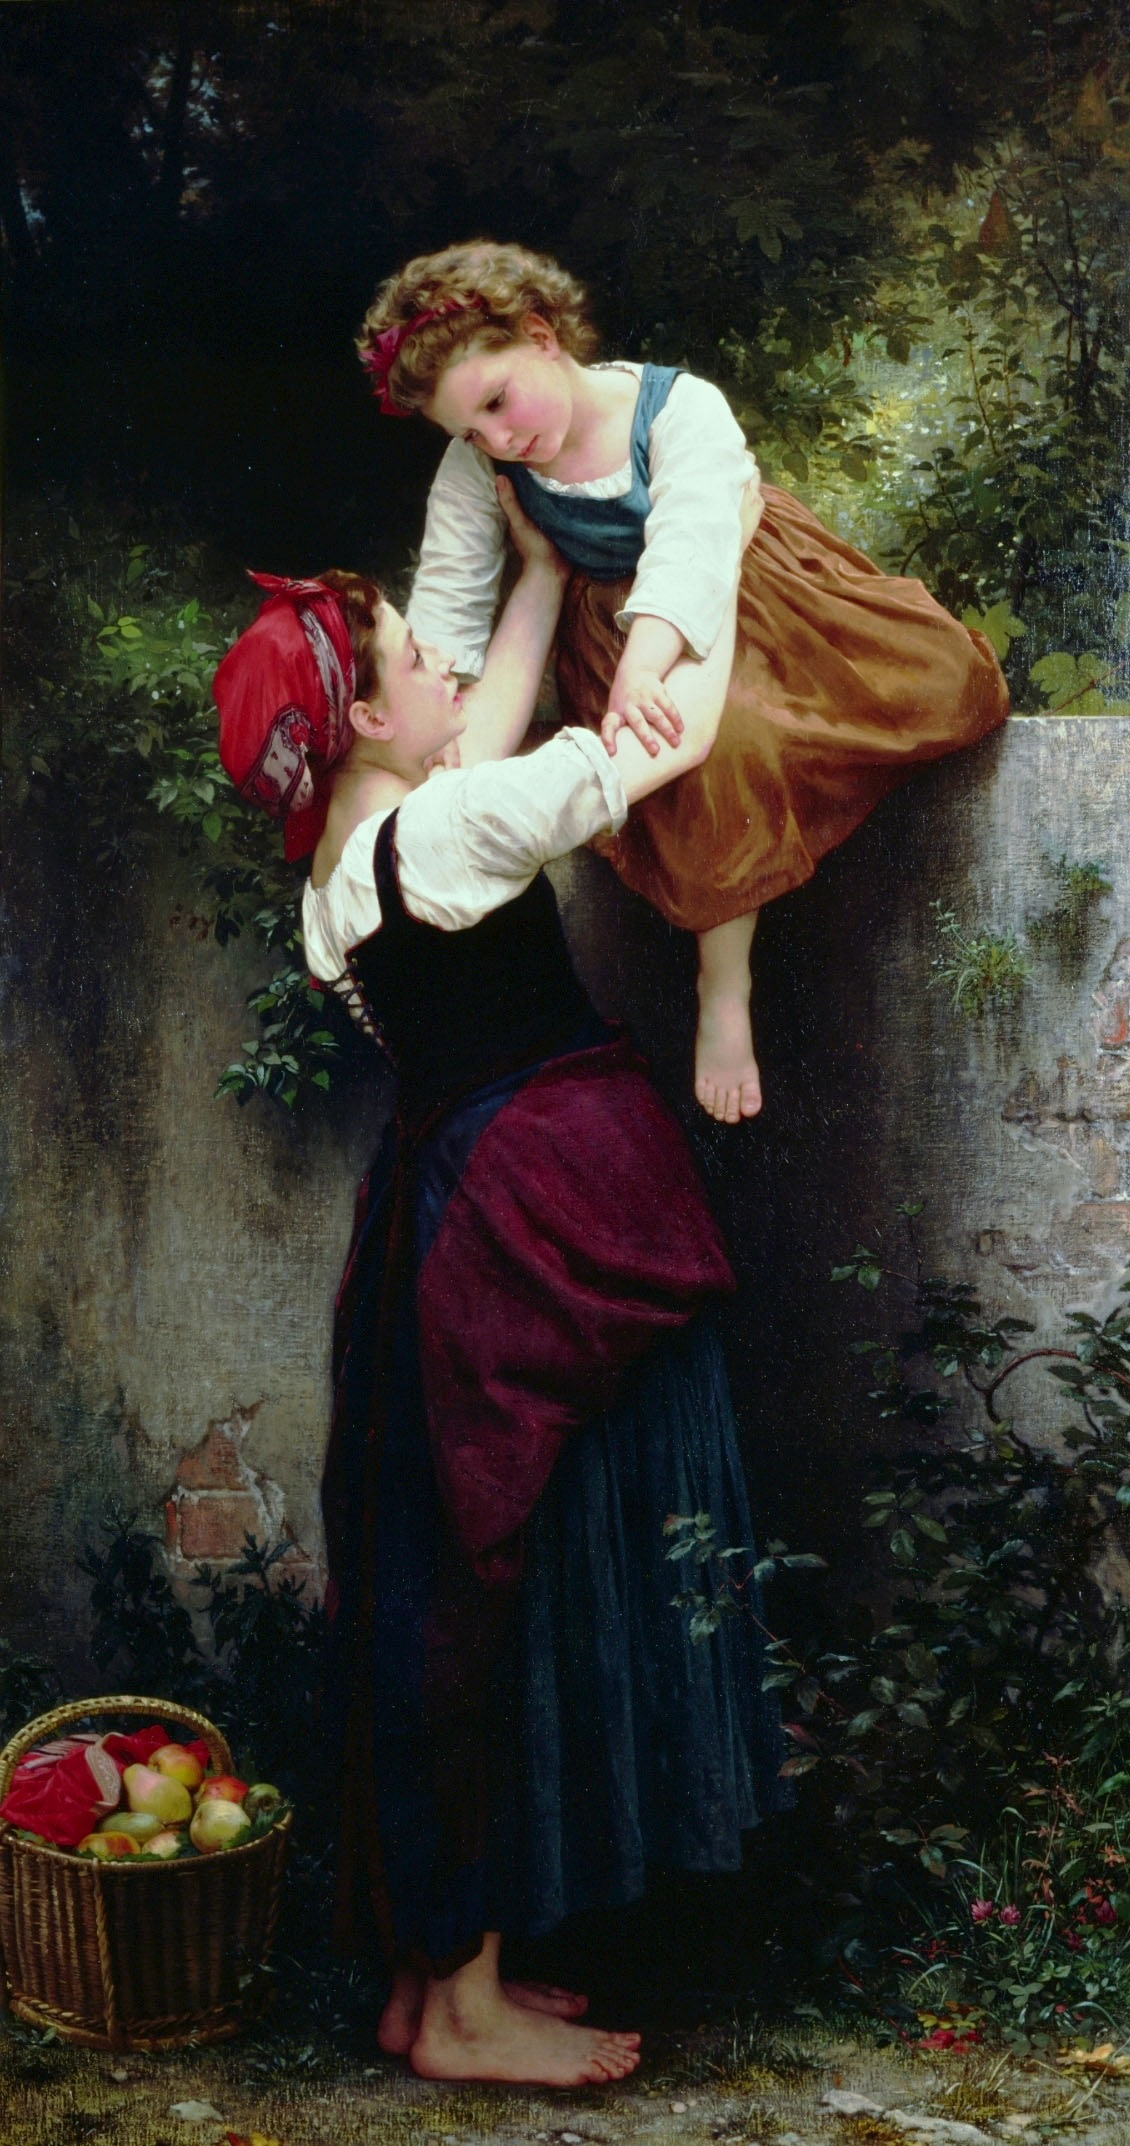 Petites Maraudeuses (Little Thieves), 1872 — William-Adolphe Bouguereau